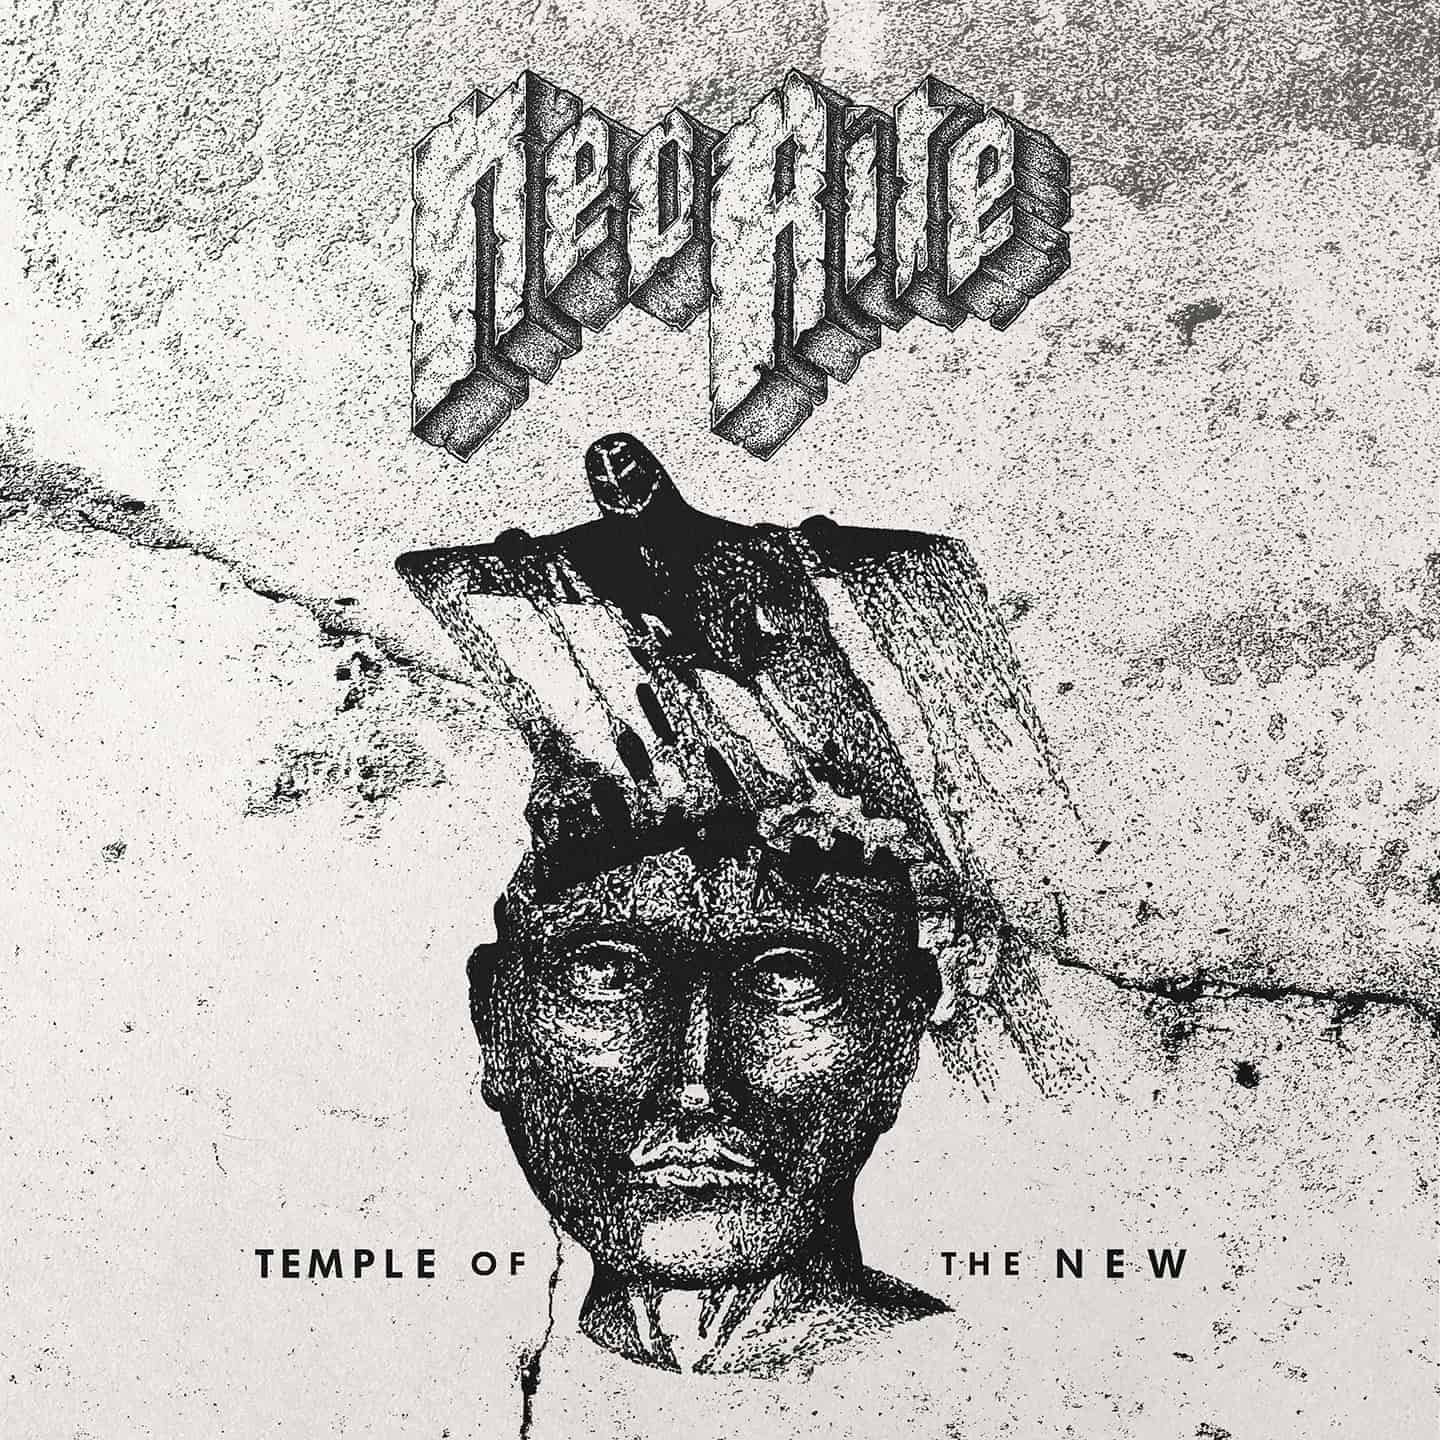 Neorite Temple Of The New Cover